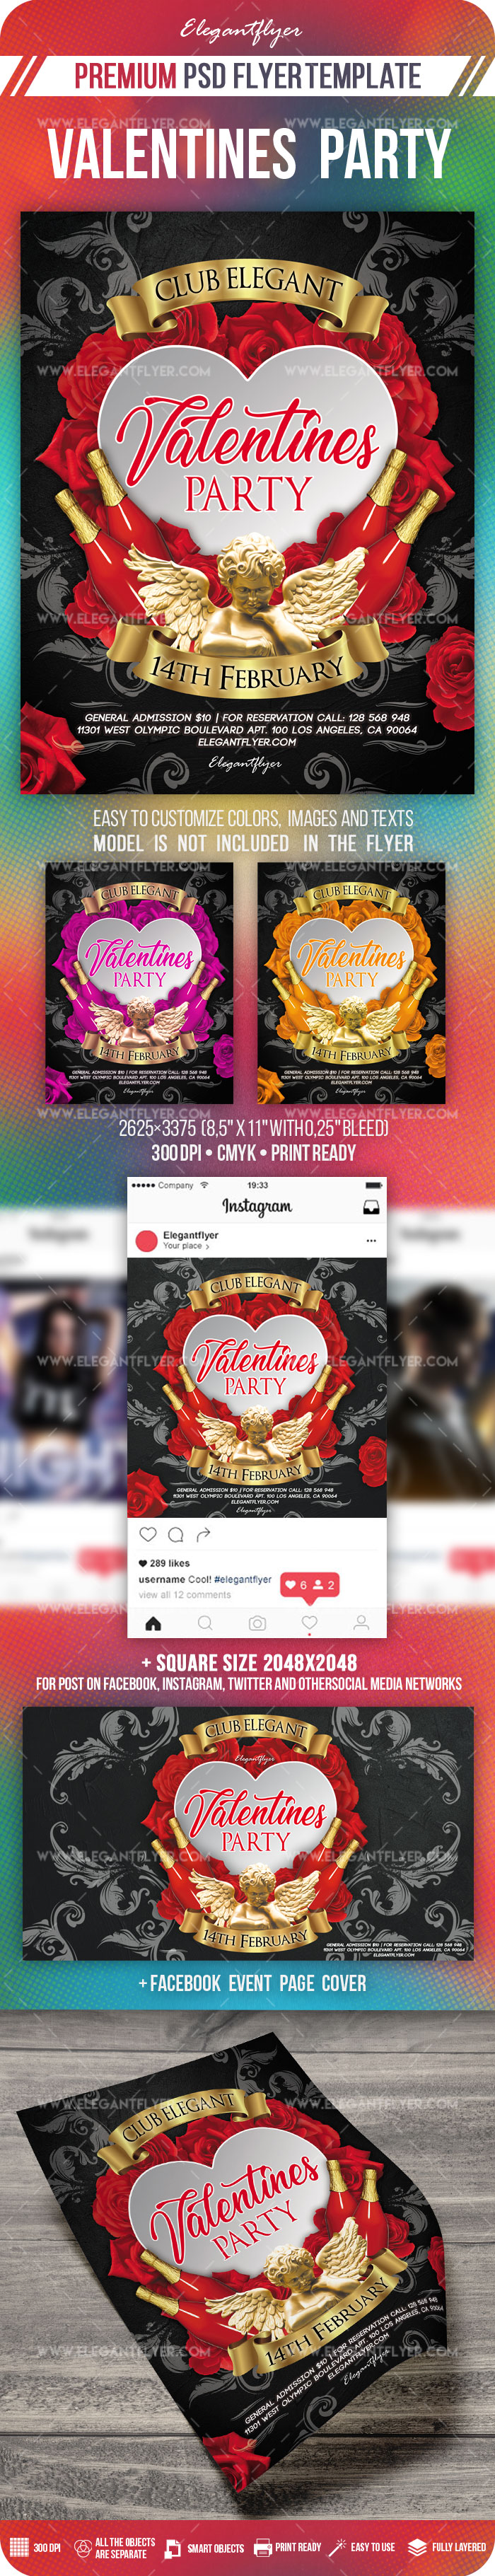 Valentines Party – PSD Flyer Template + Facebook Cover + Instagram Post